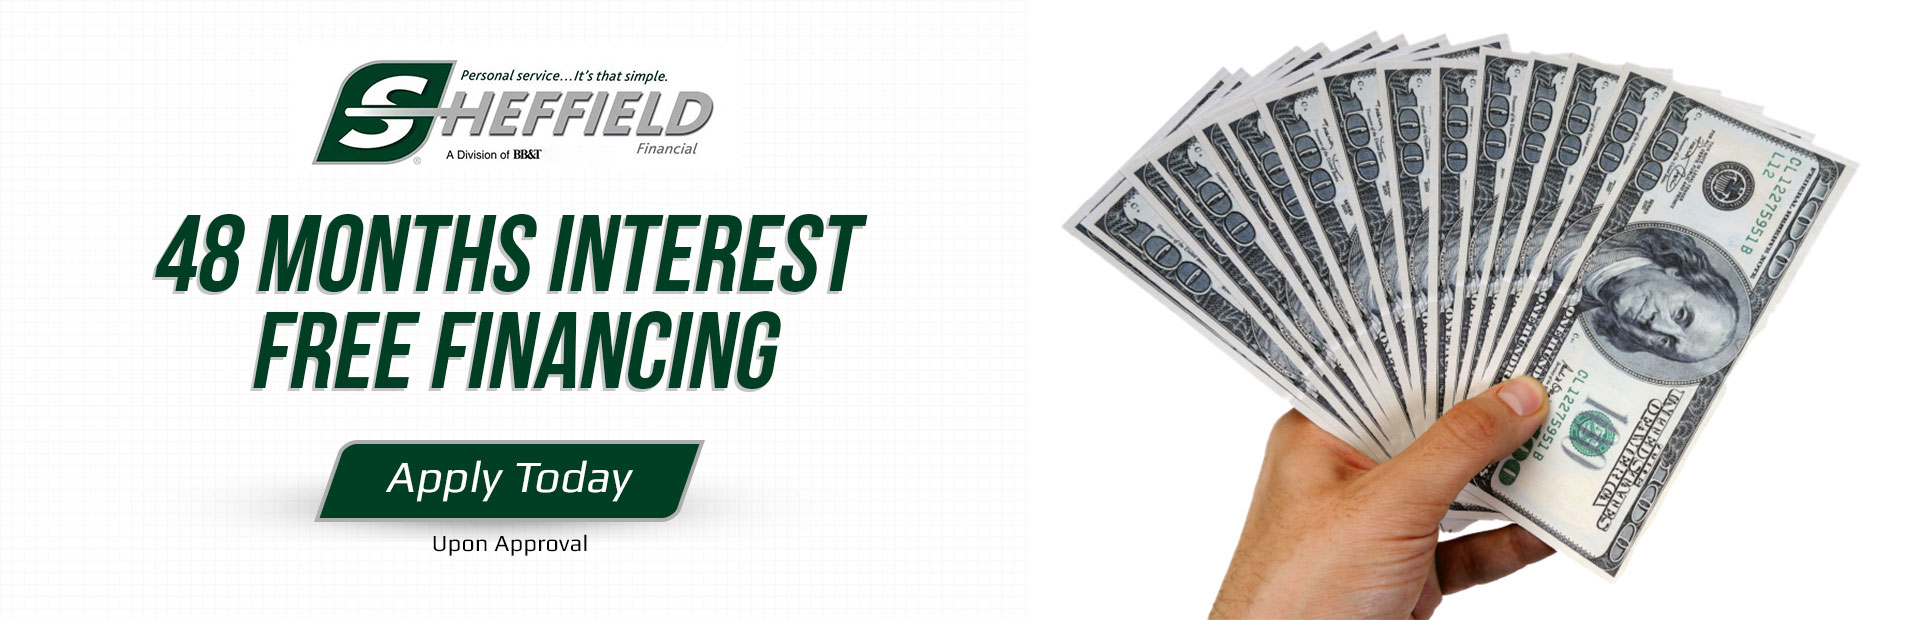 Get 48 months of interest-free financing!